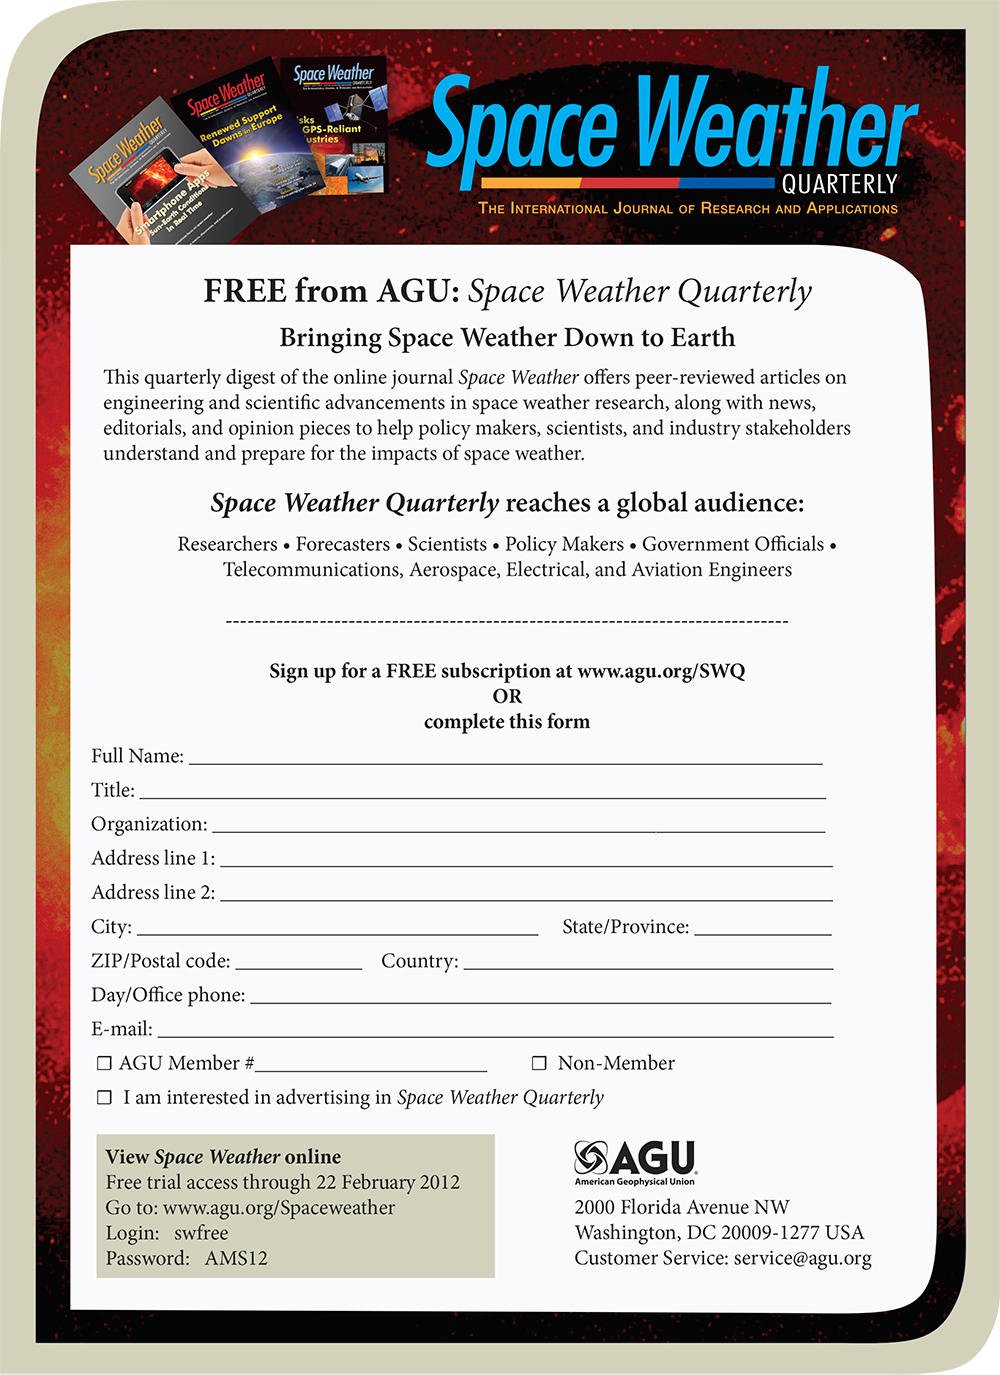 Space Weather Subscription Card Interactive PDF Design and Layout